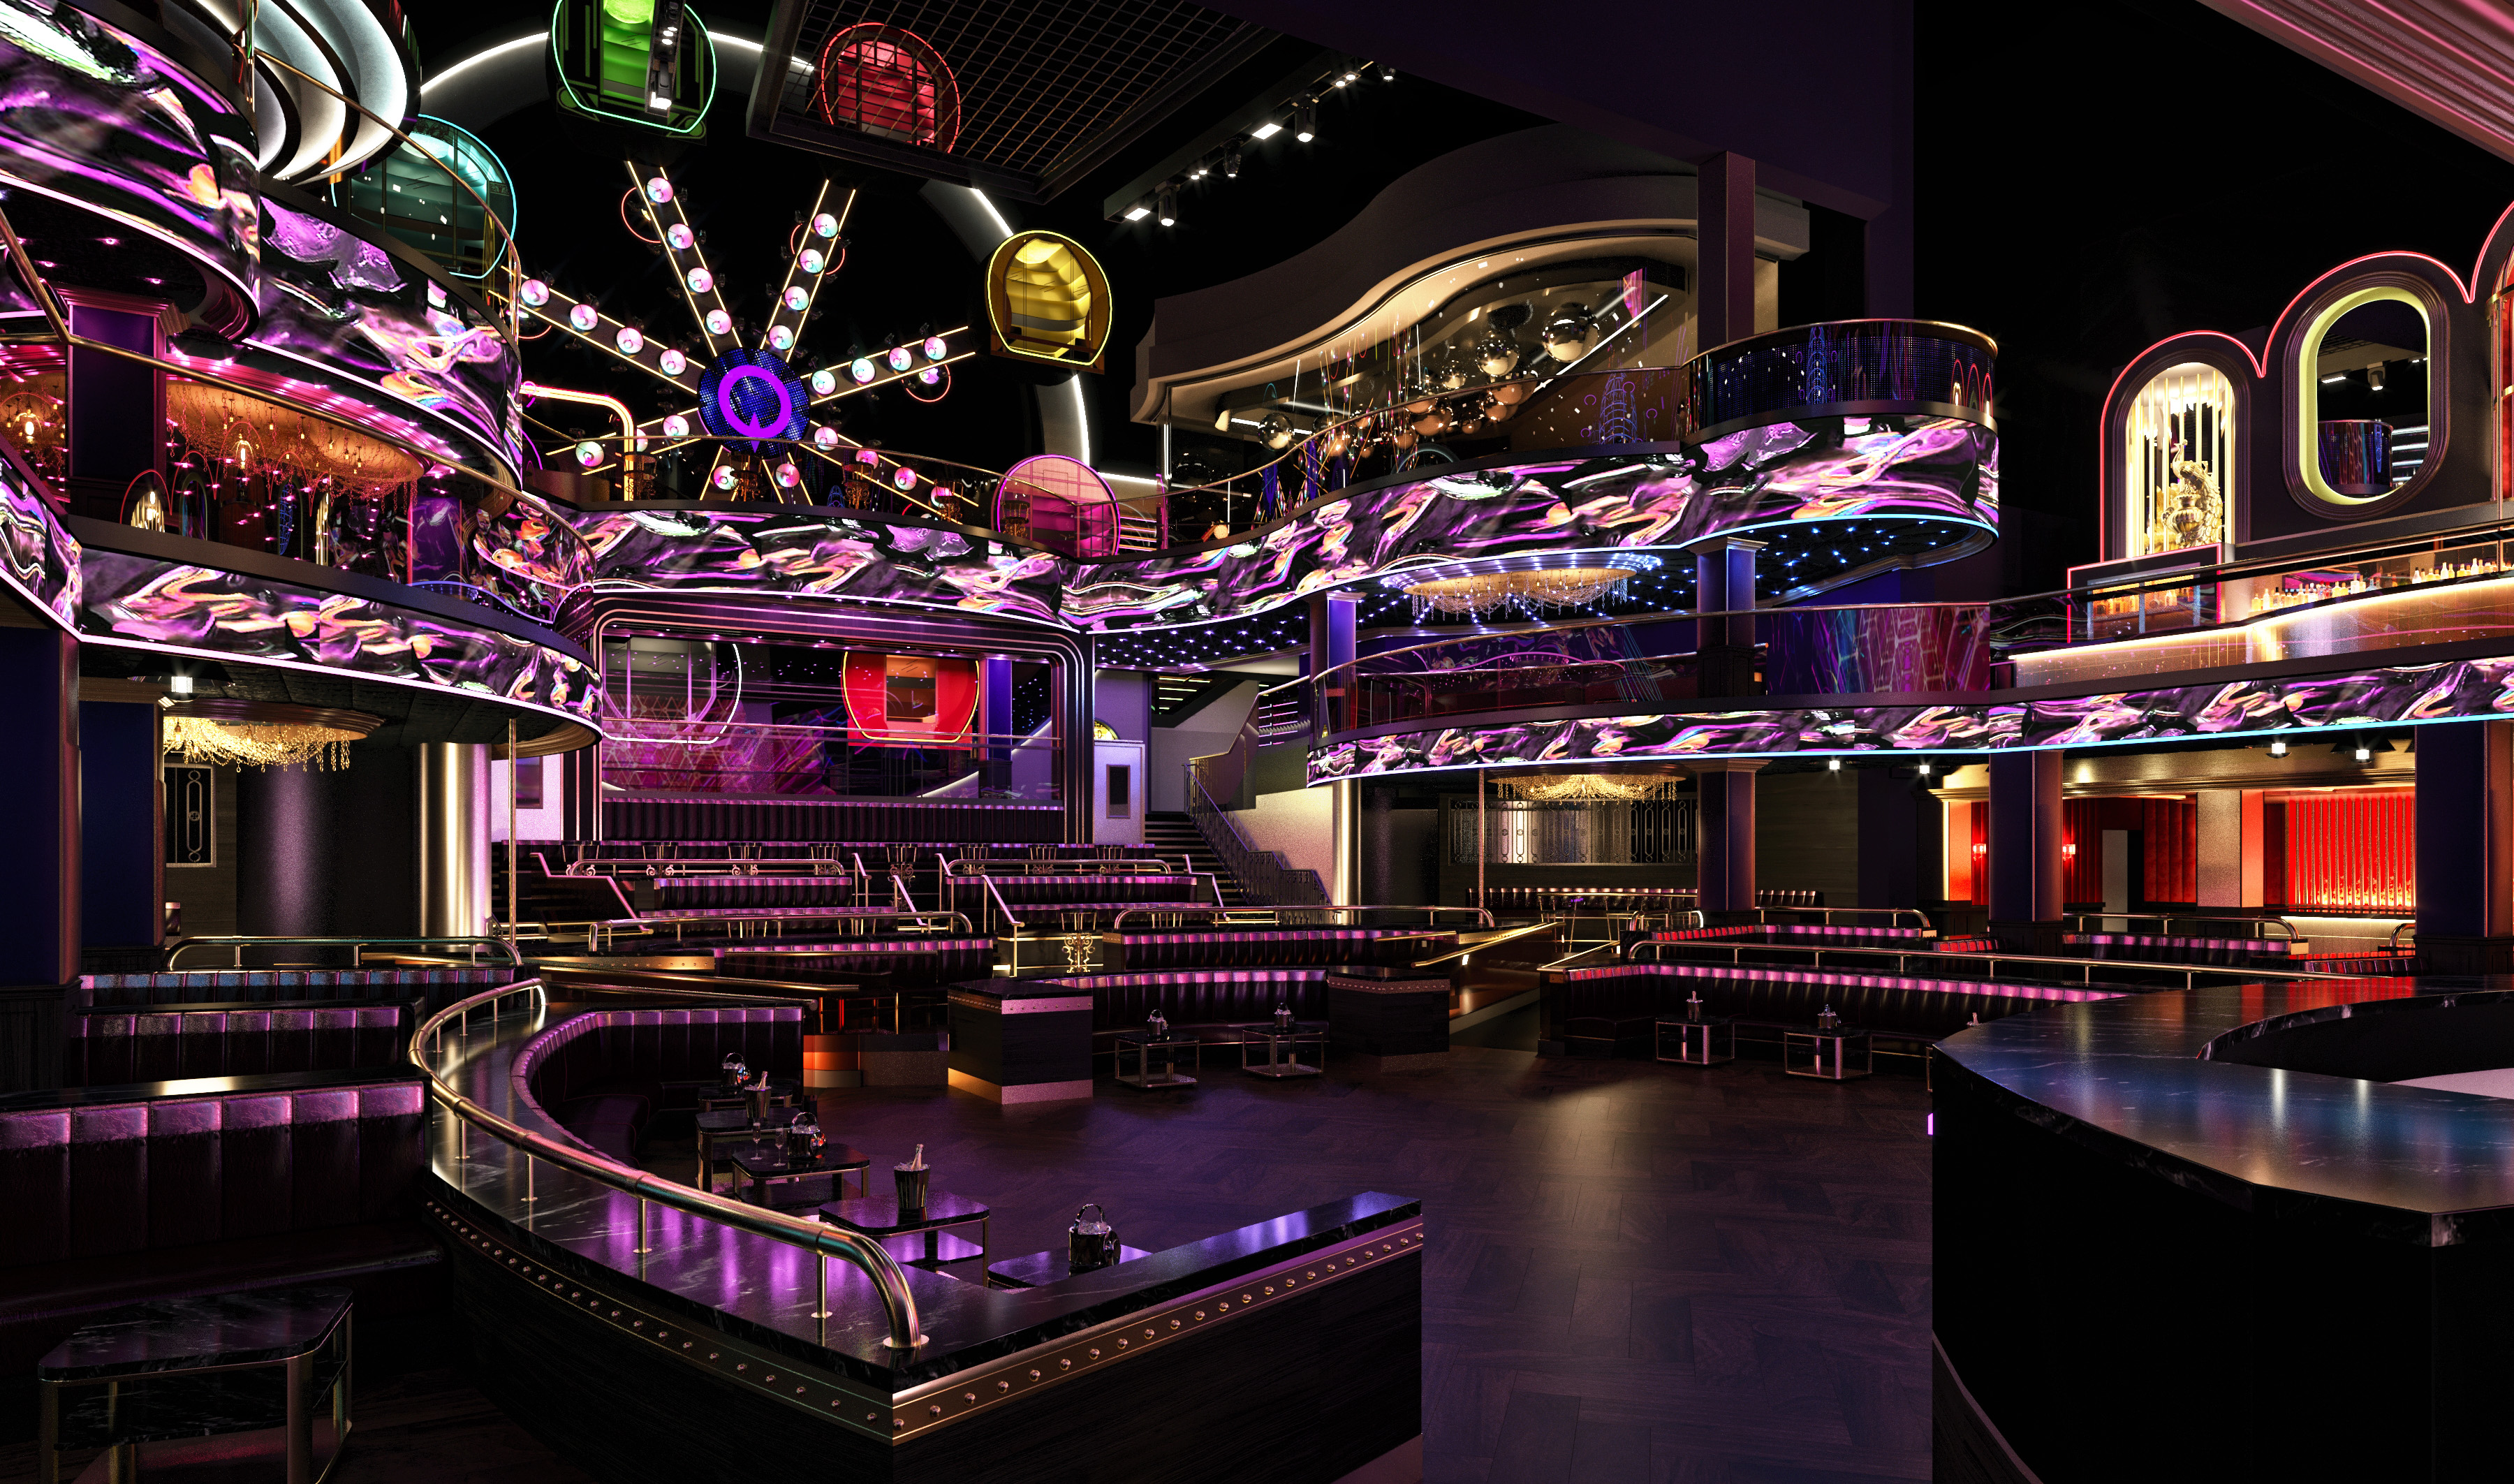 Building marguee front clipart vector library stock Famous nightclub, Marquee, set to launch in Singapore next year with ... vector library stock